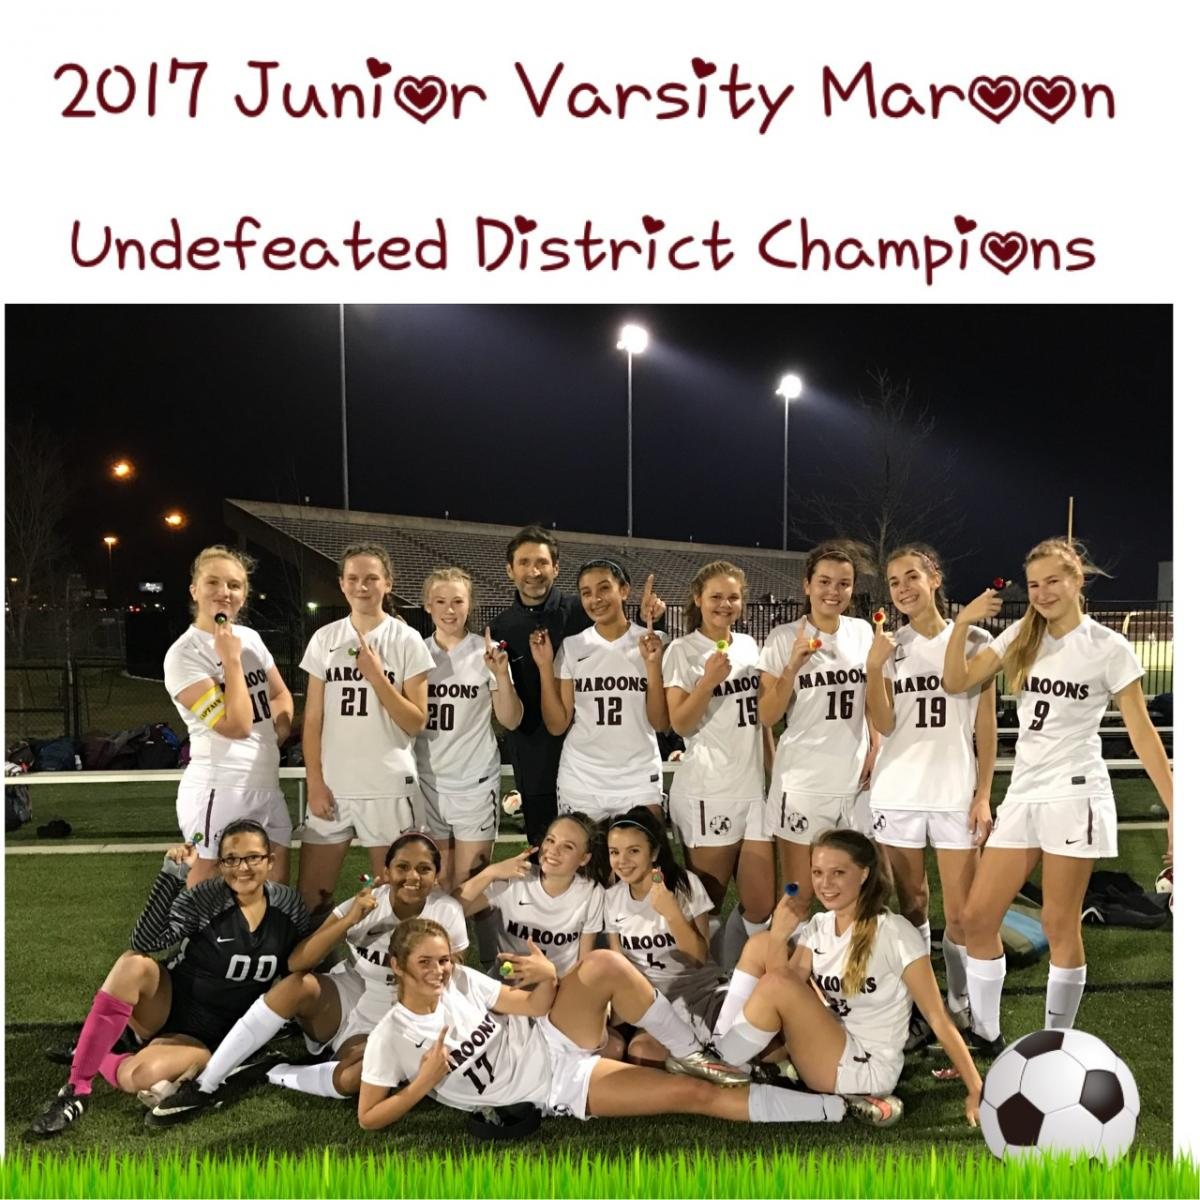 JV Maroon Wins District